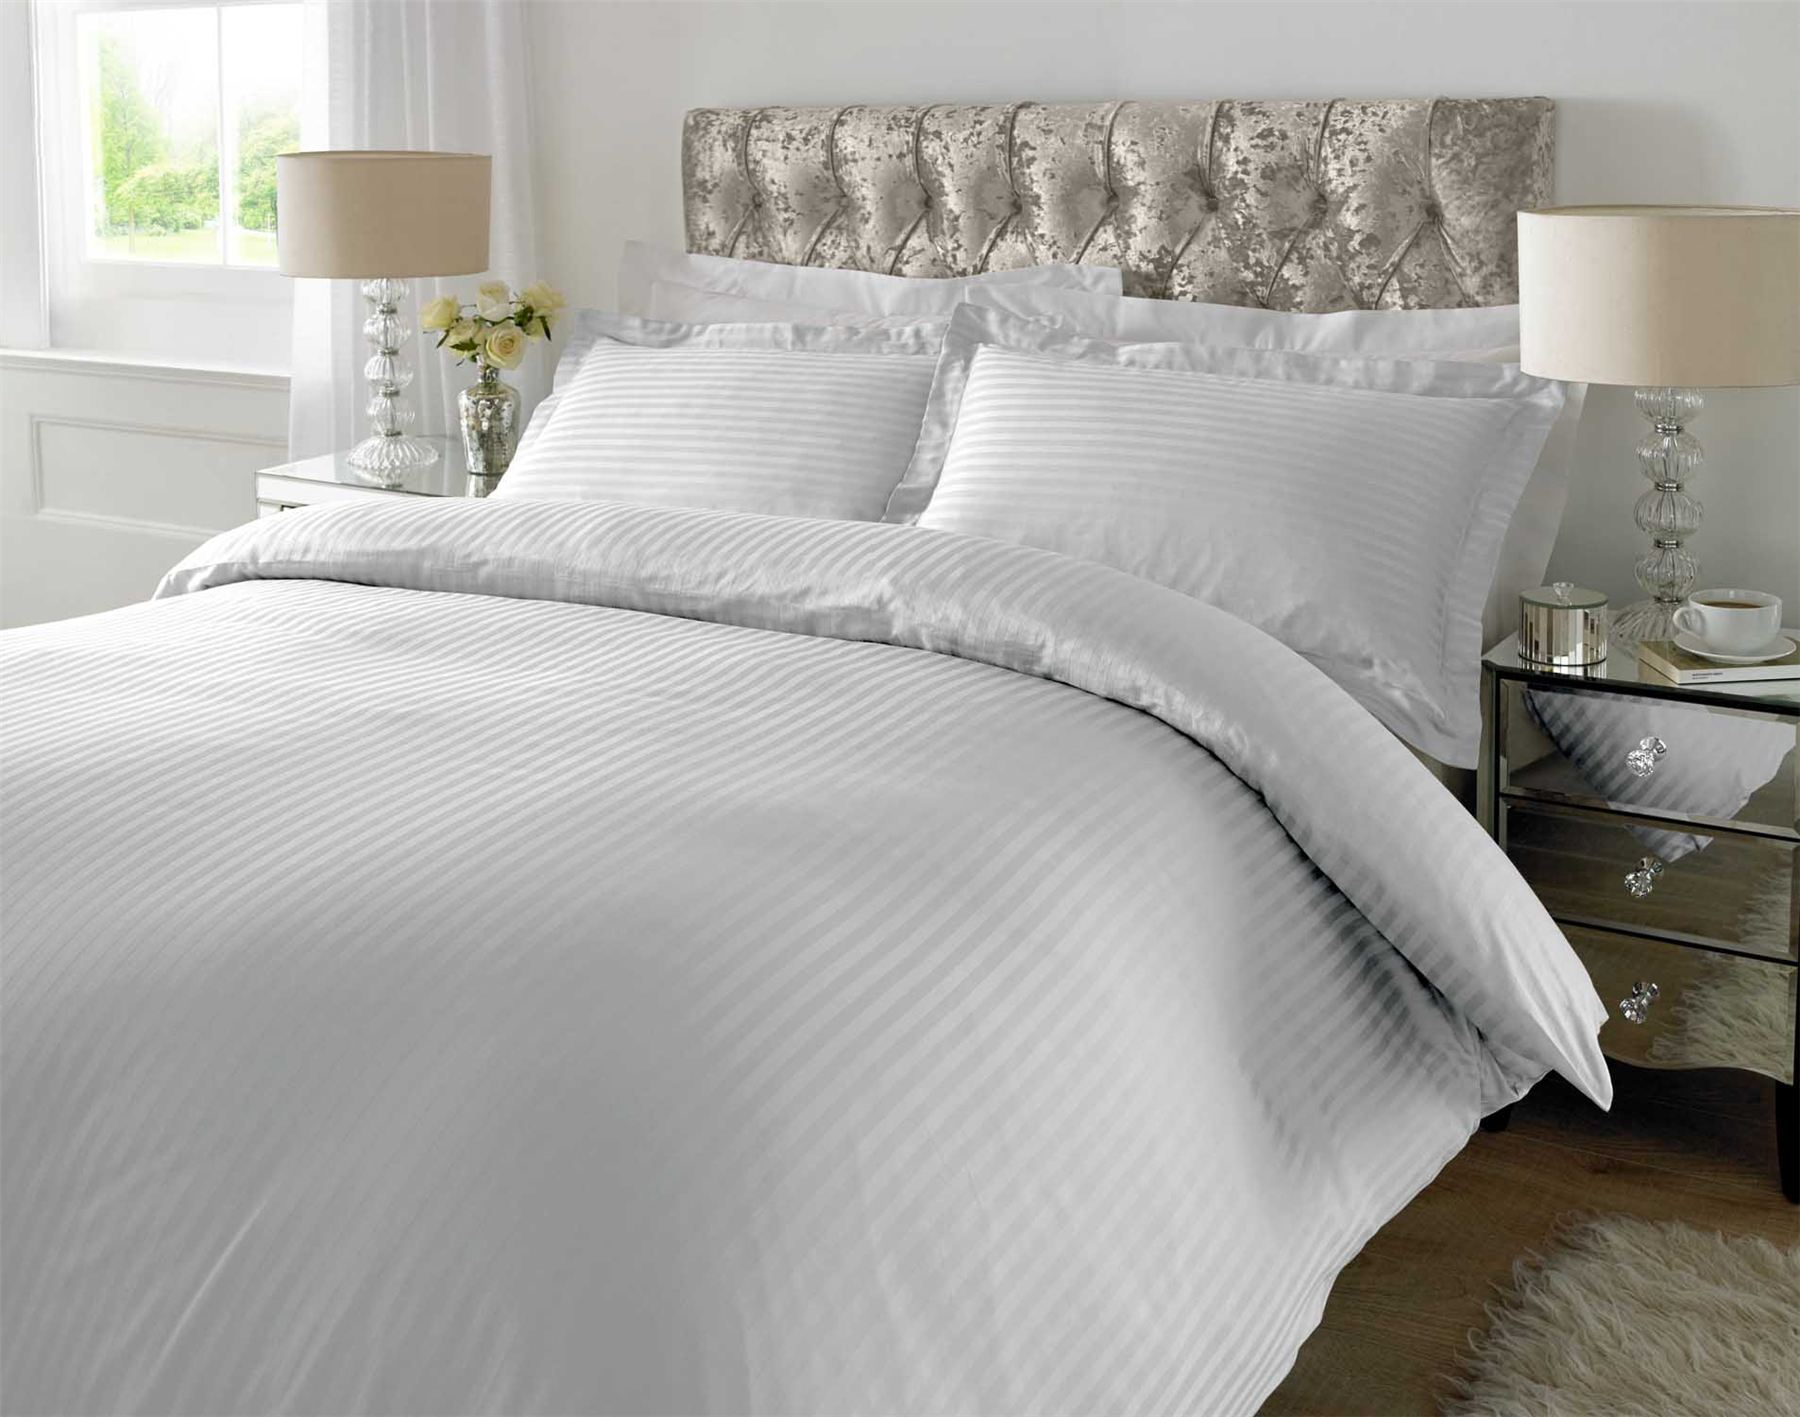 100 cotton luxury duvet cover set pillow case bedding single double king size ebay. Black Bedroom Furniture Sets. Home Design Ideas